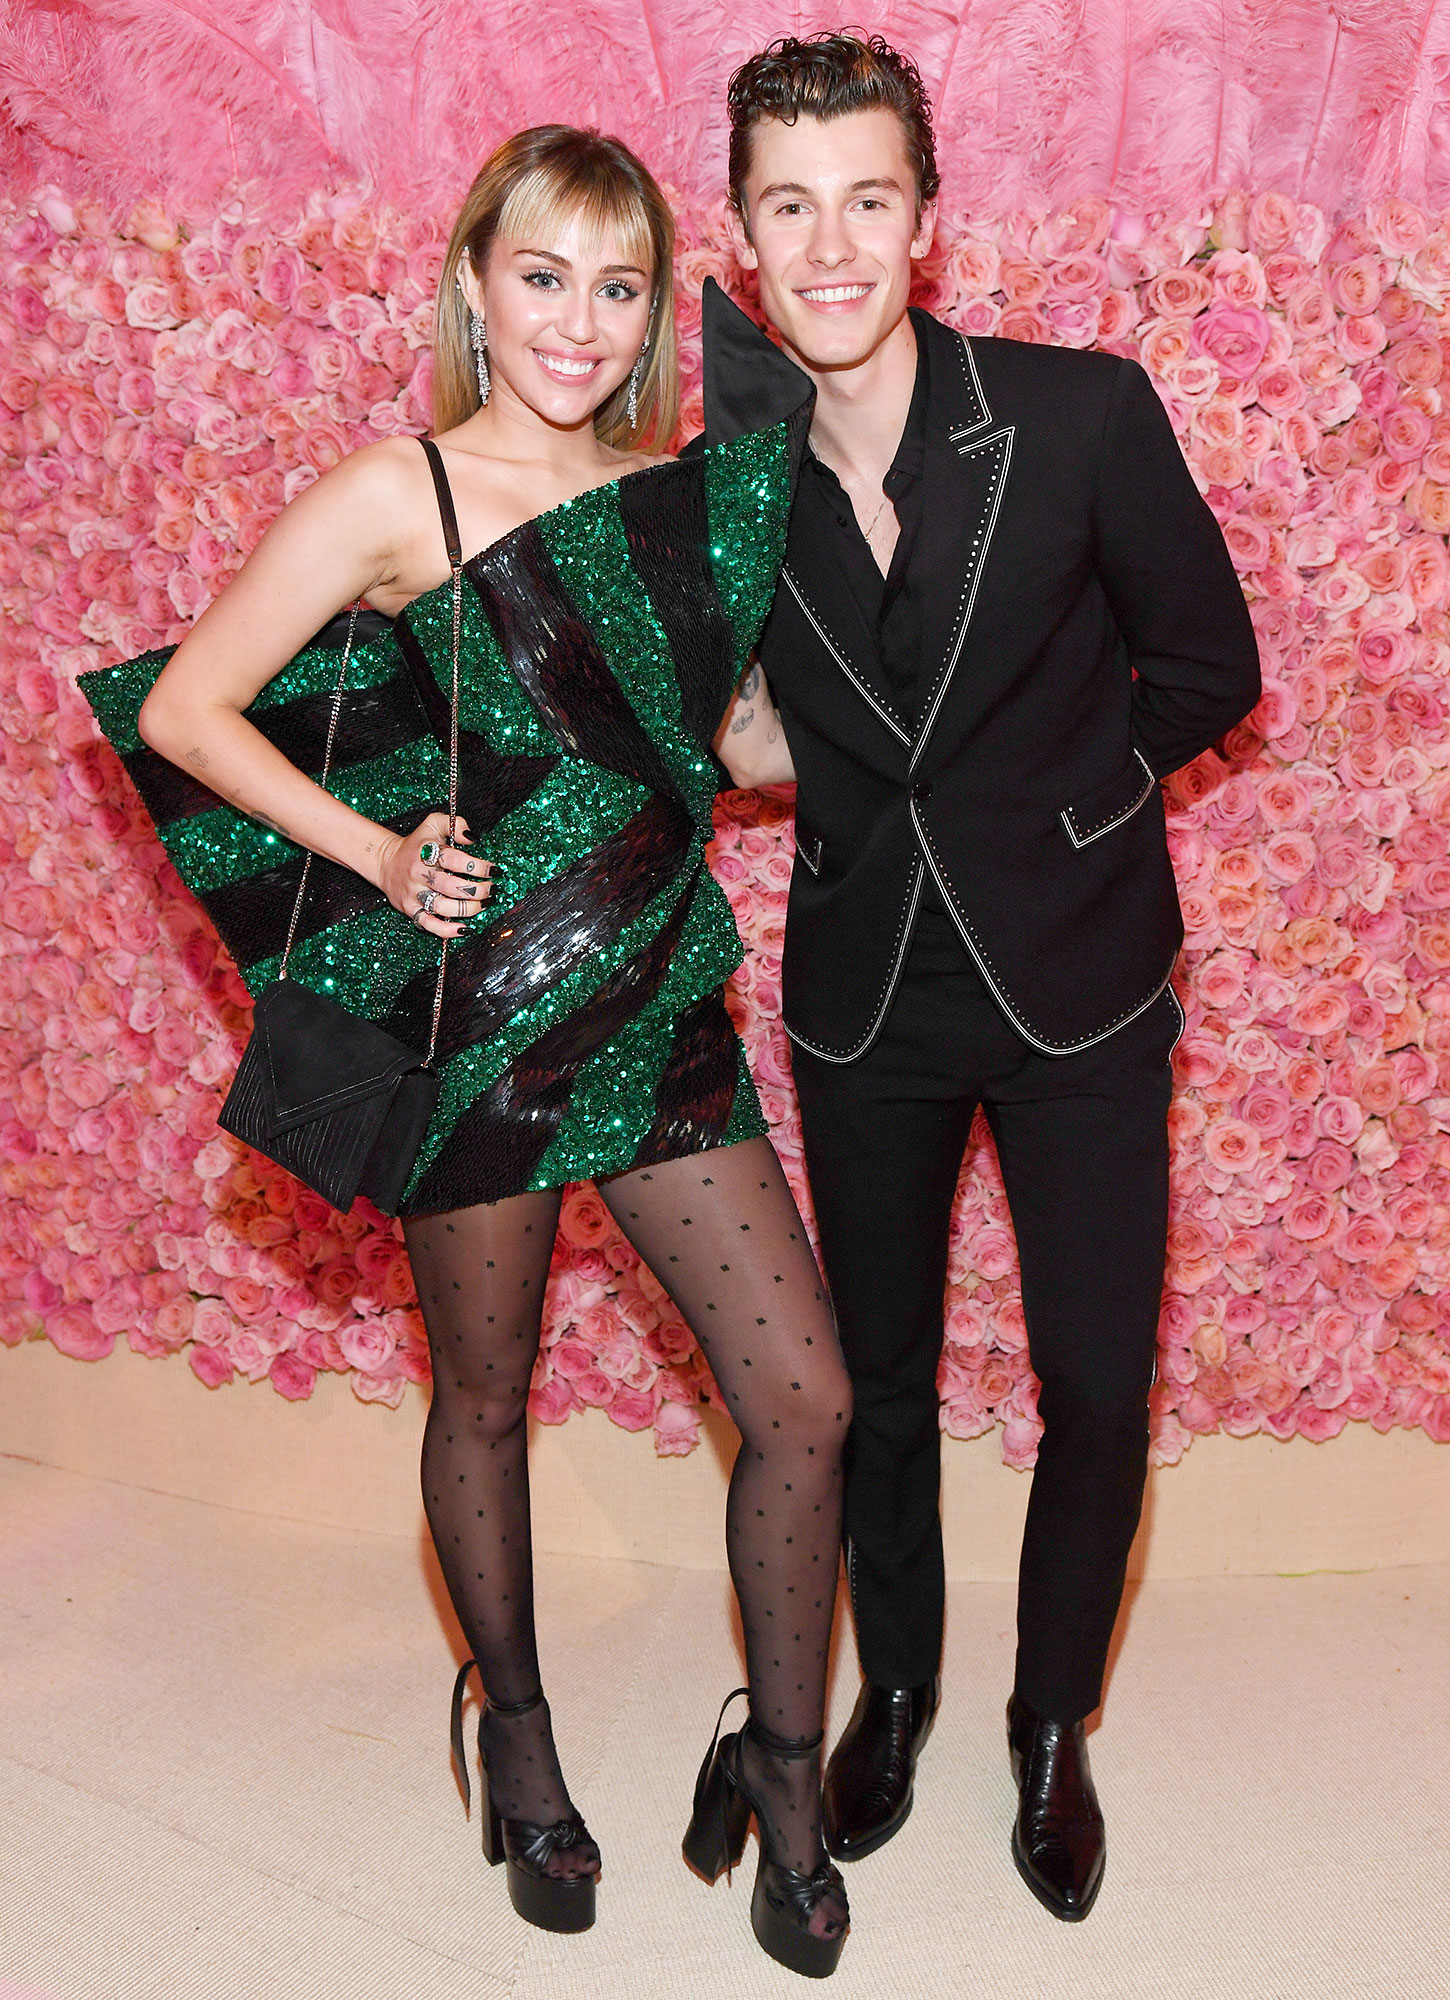 Met Gala 2019 What You Didnt See Miley Cyrus Shawn Mendes - Cyrus and Shawn Mendes caught up after performing together at the Grammys in February.